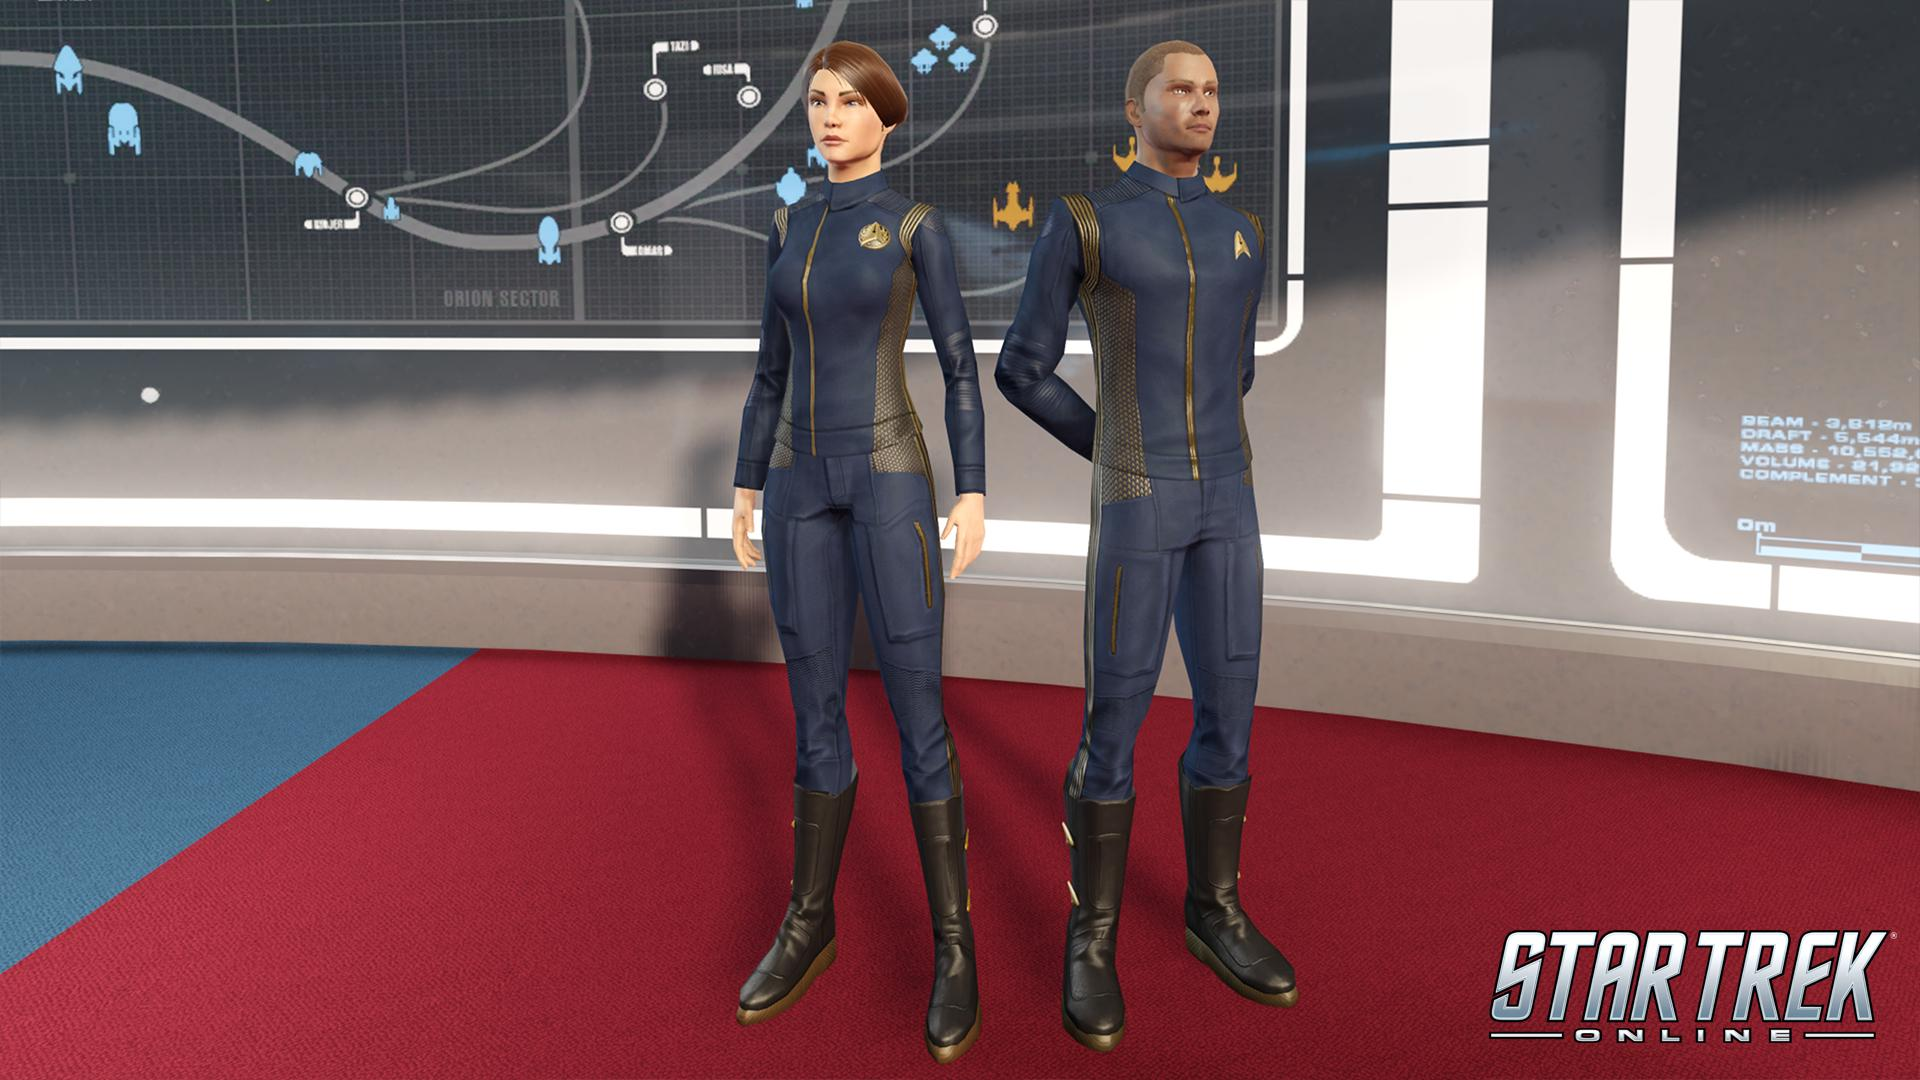 Star Trek Online is offering a free uniform and Type 7 Shuttle